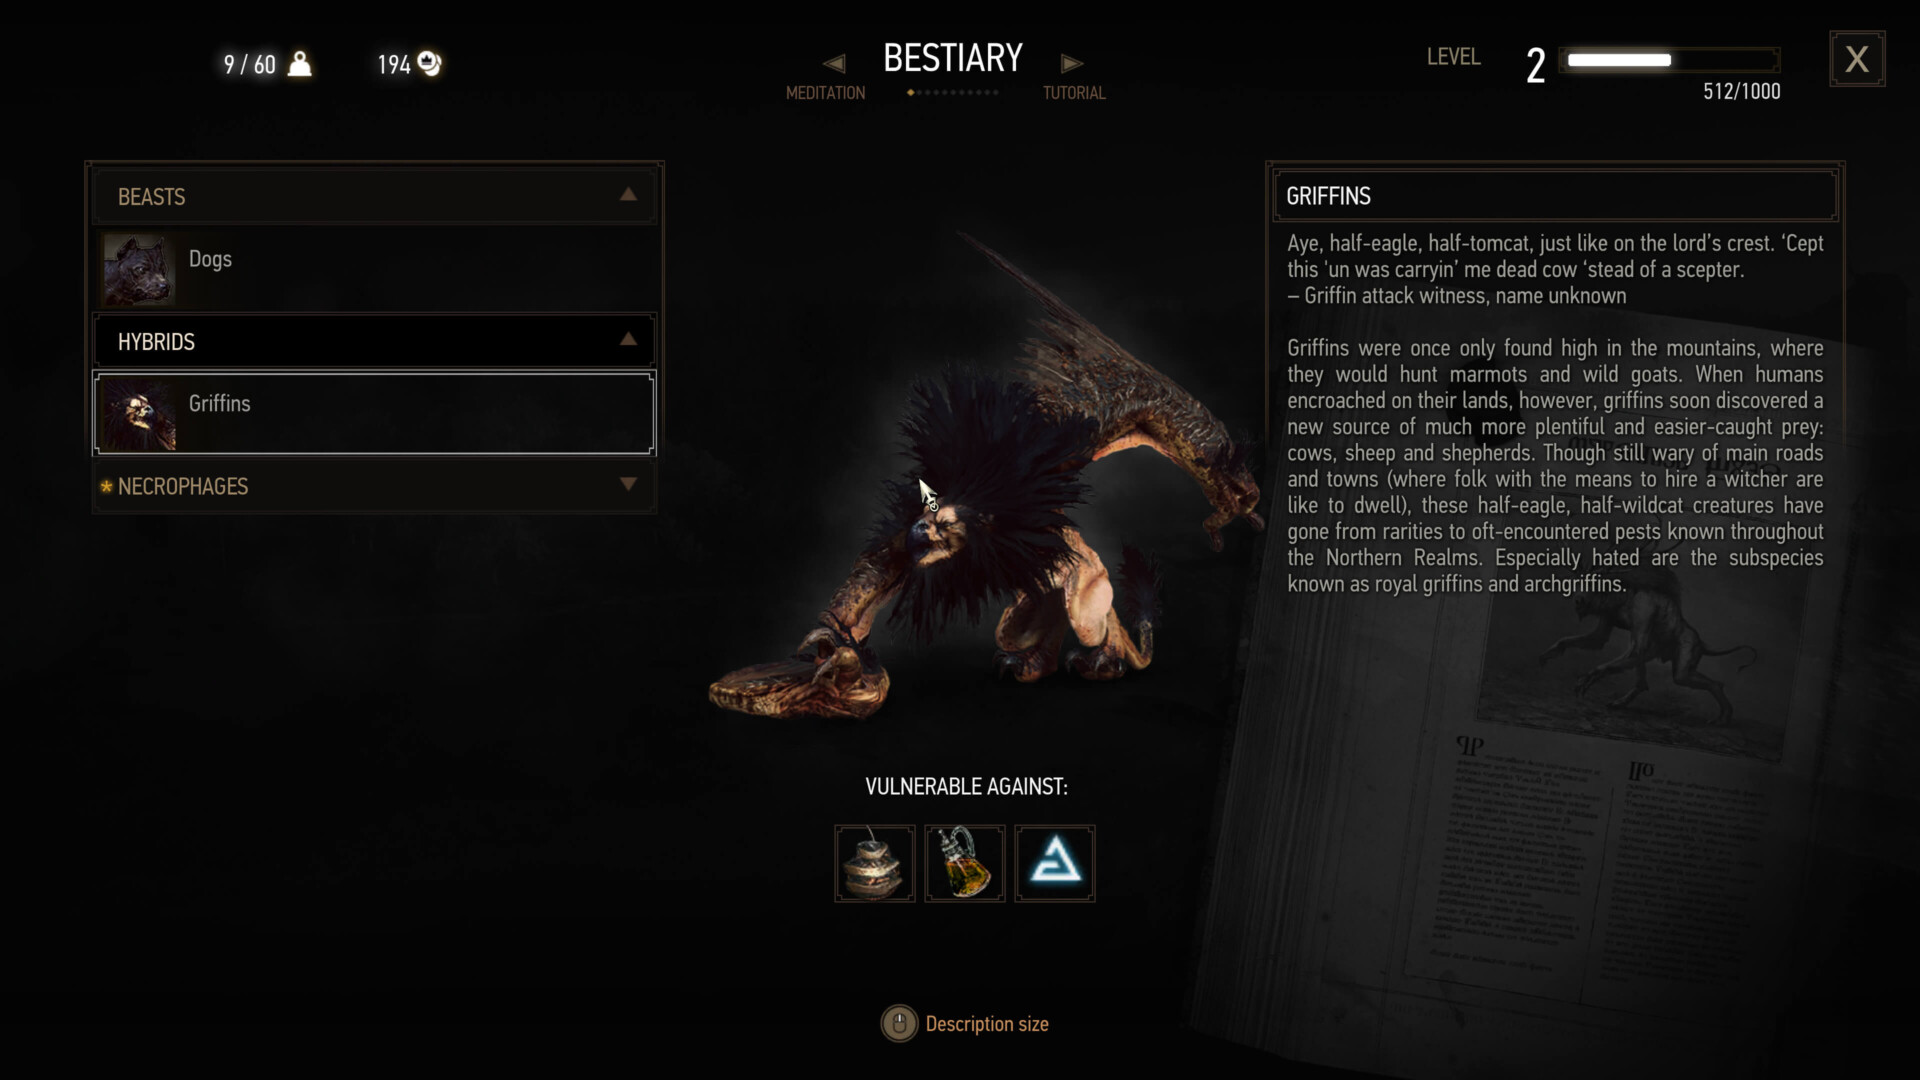 Bestiary screenshot of The Witcher 3: Wild Hunt video game interface.